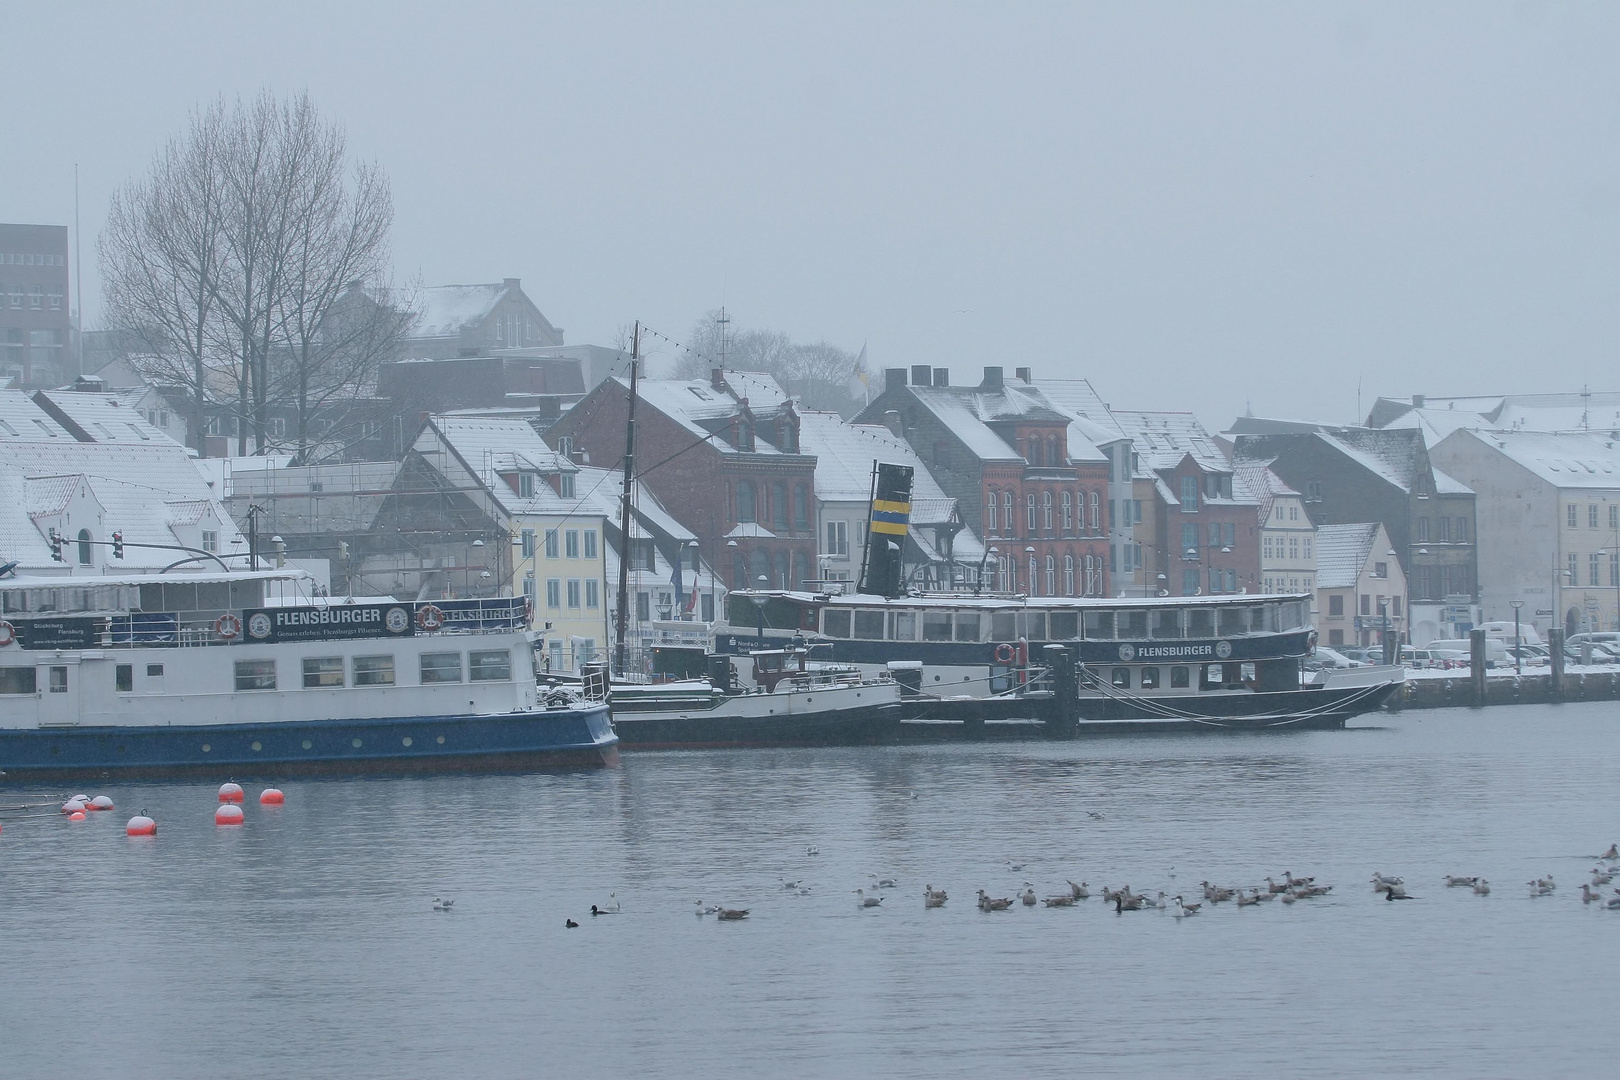 Winter in Flensburg